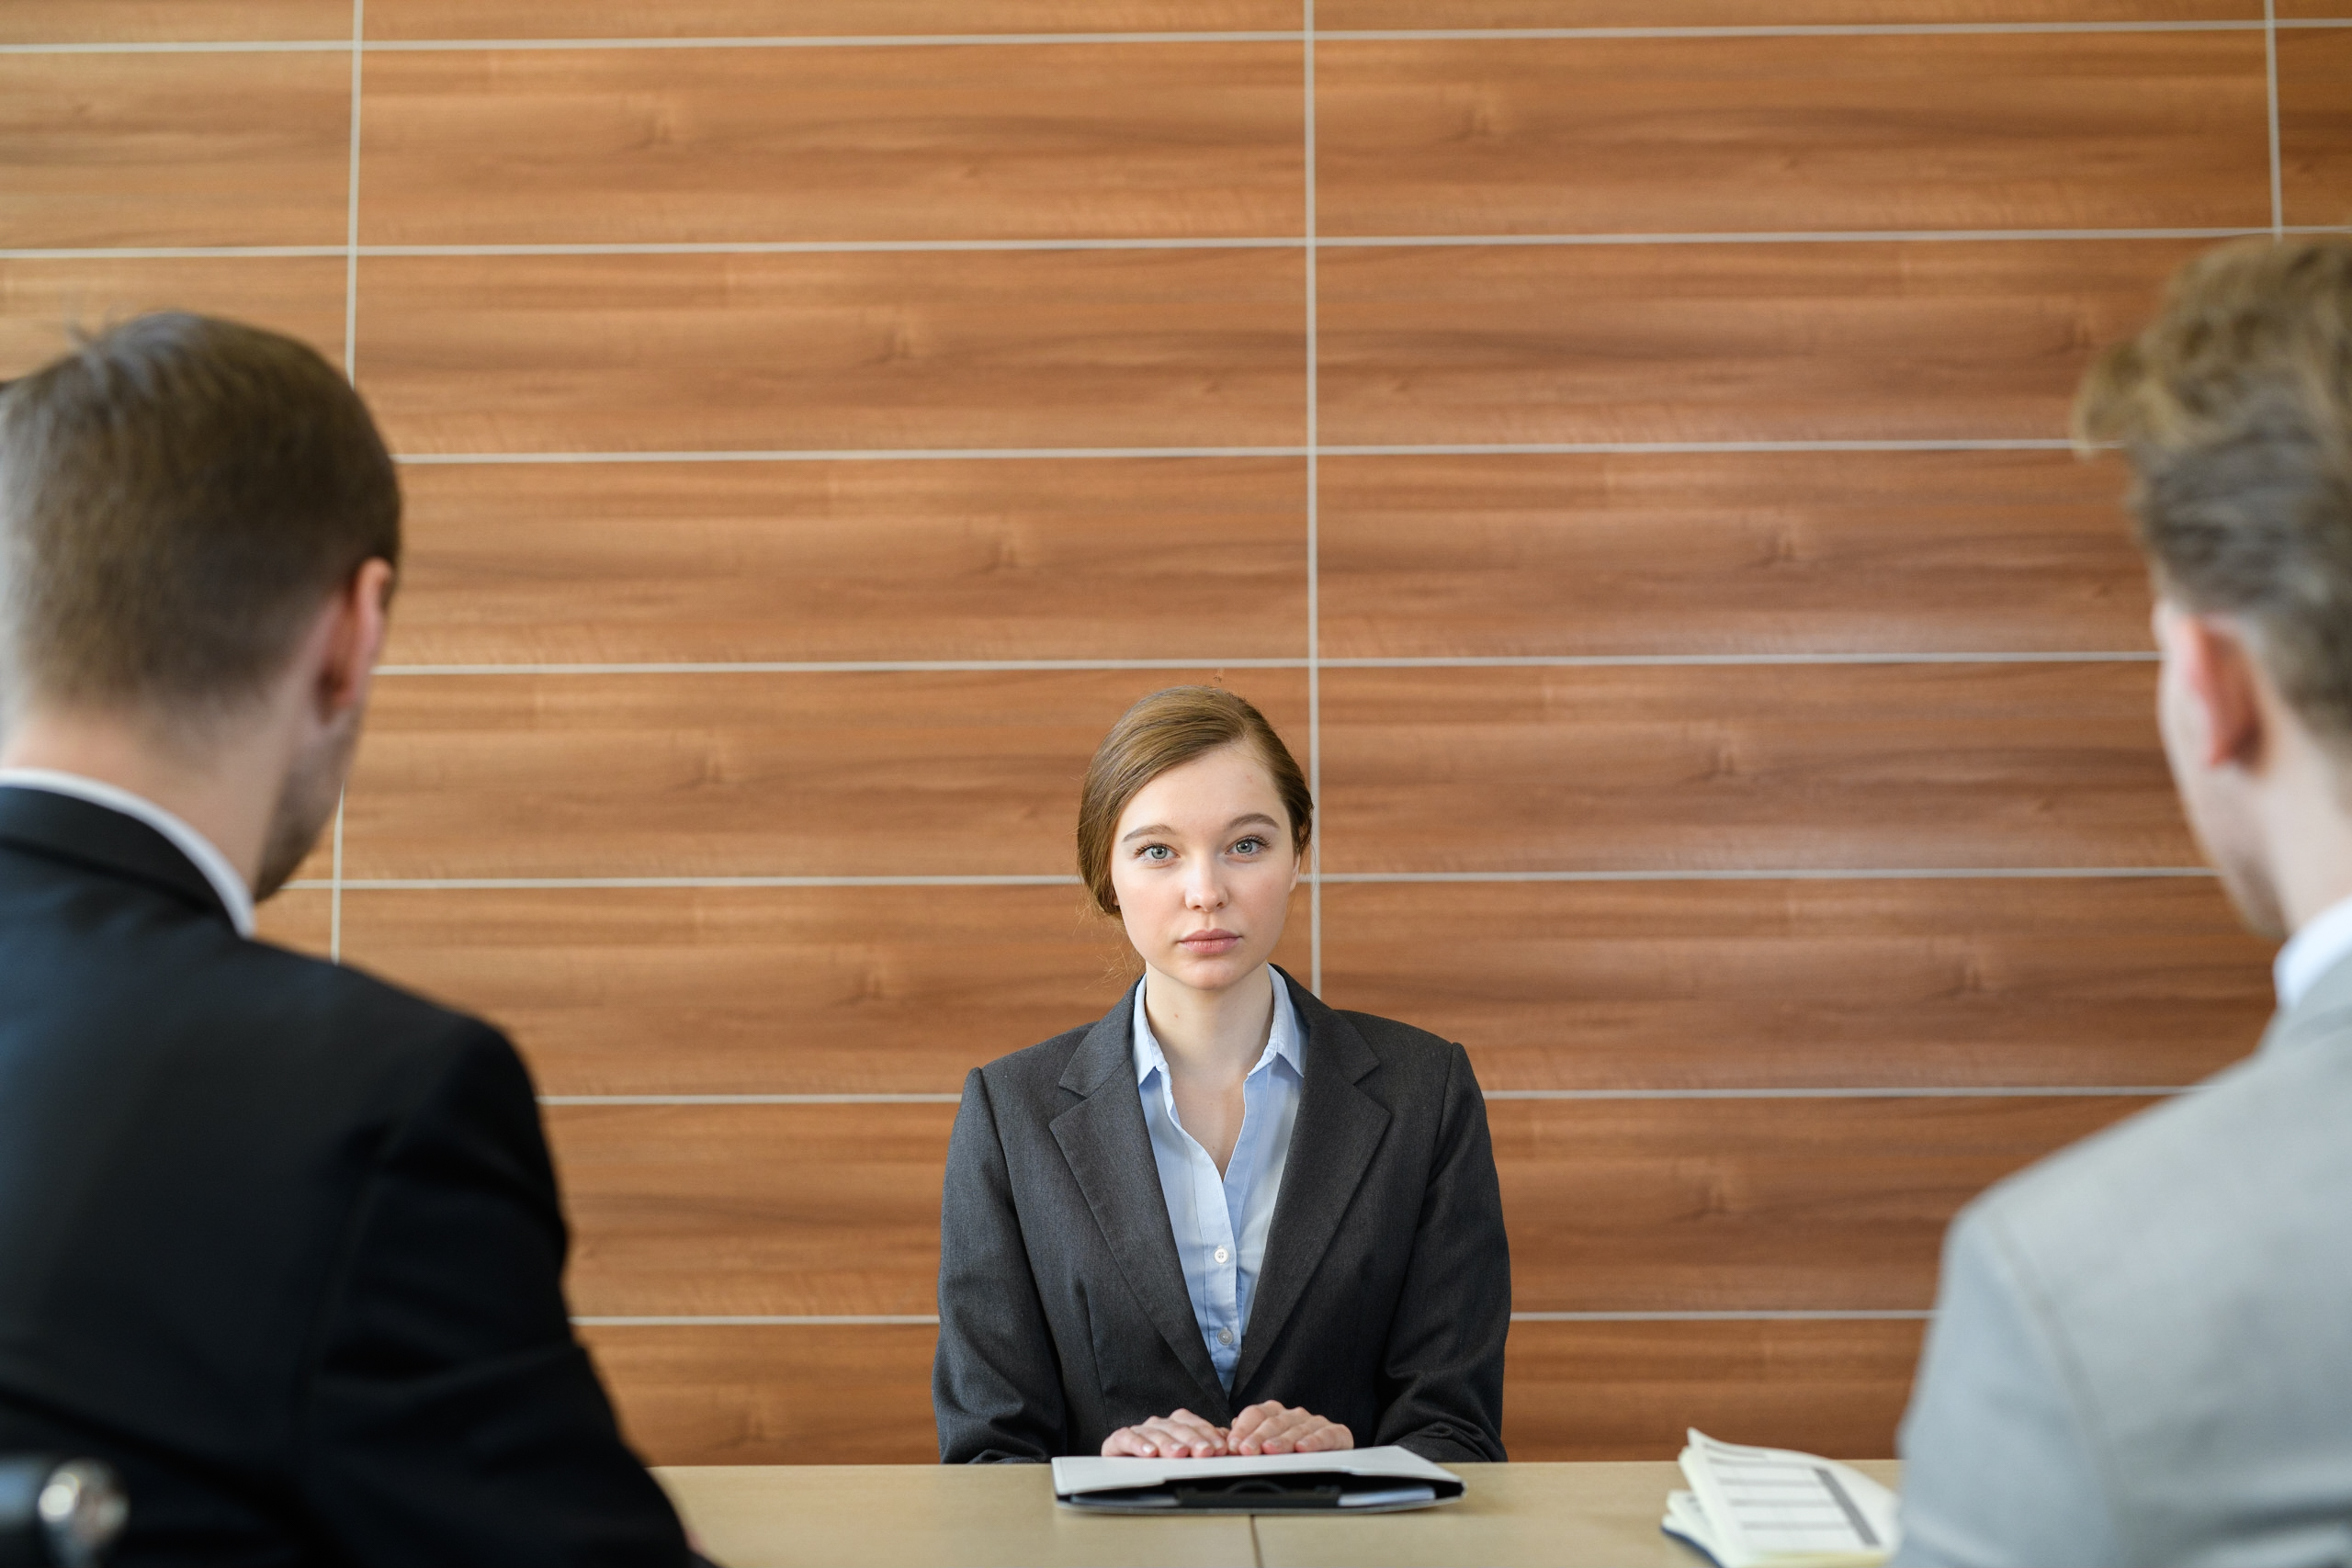 Illegal interview questions – what HR needs to know